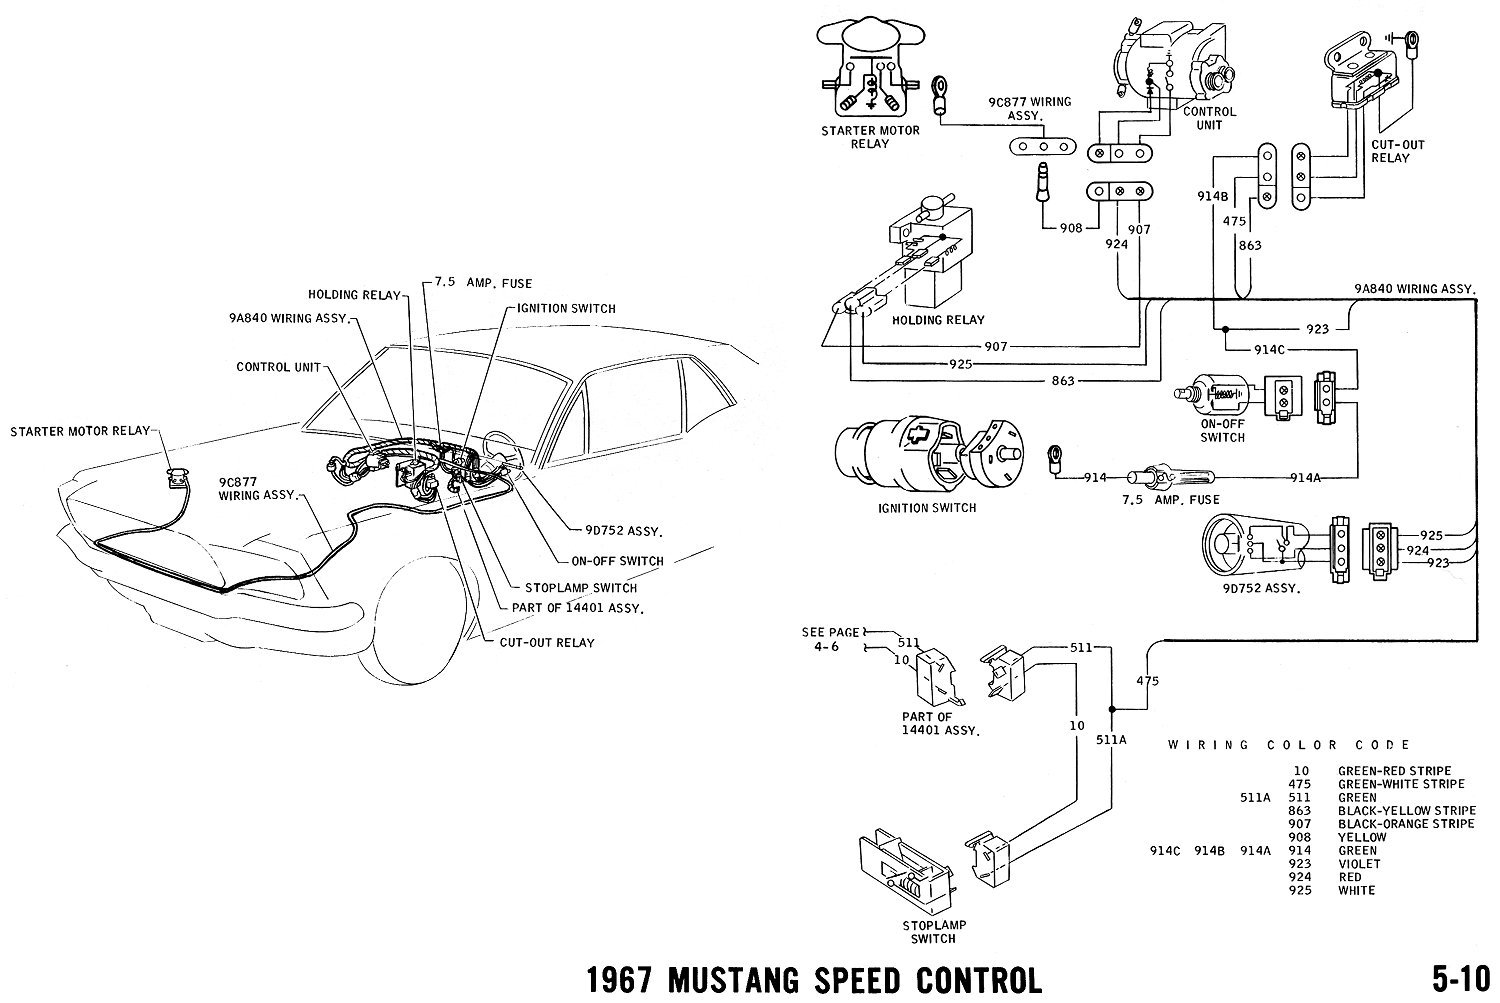 67speed 1967 mustang wiring and vacuum diagrams average joe restoration 68 mustang headlight wiring diagram at readyjetset.co